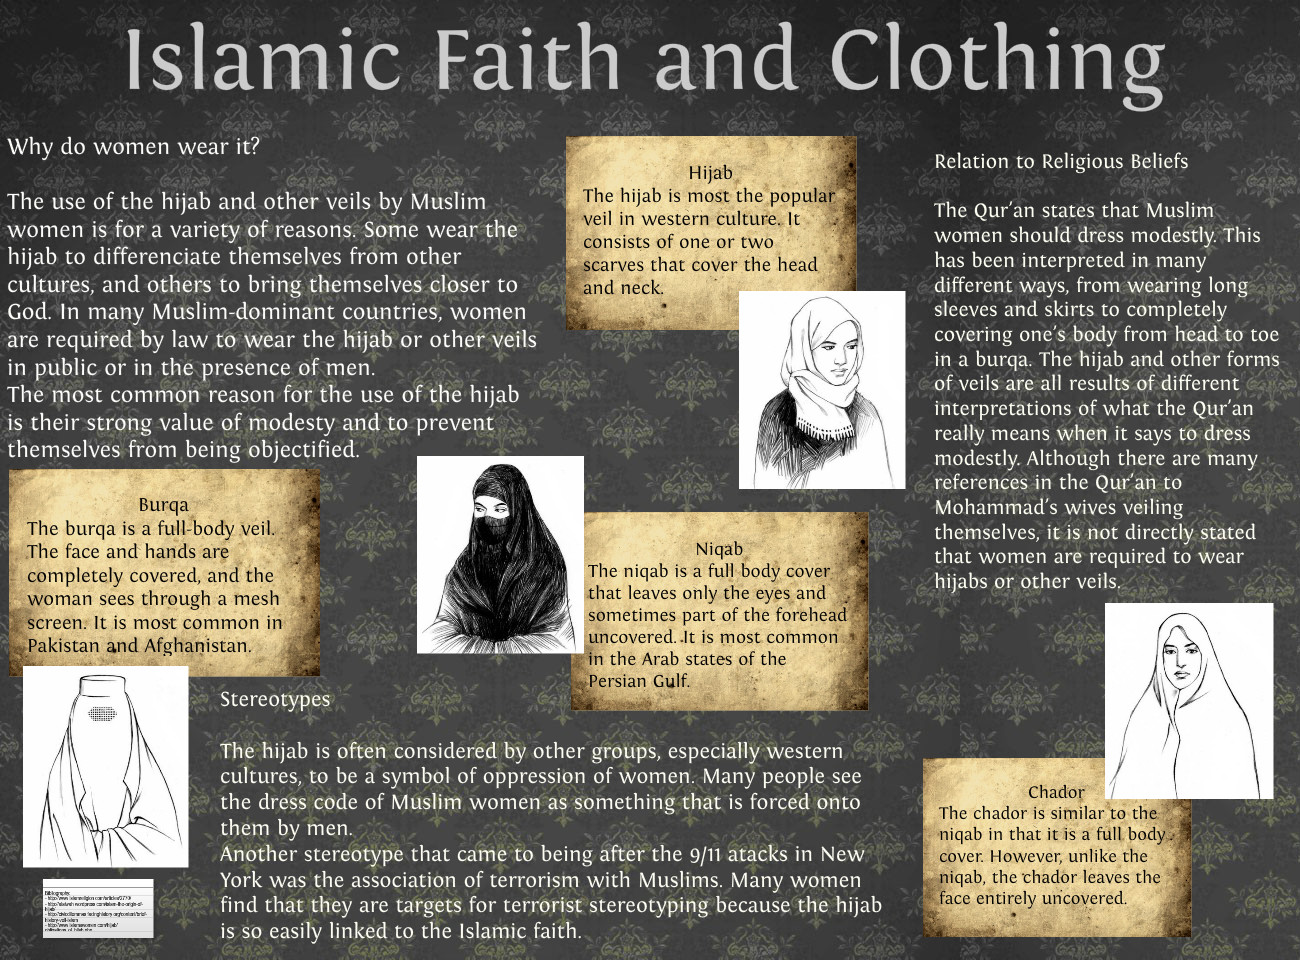 Islamic Faith and Clothing